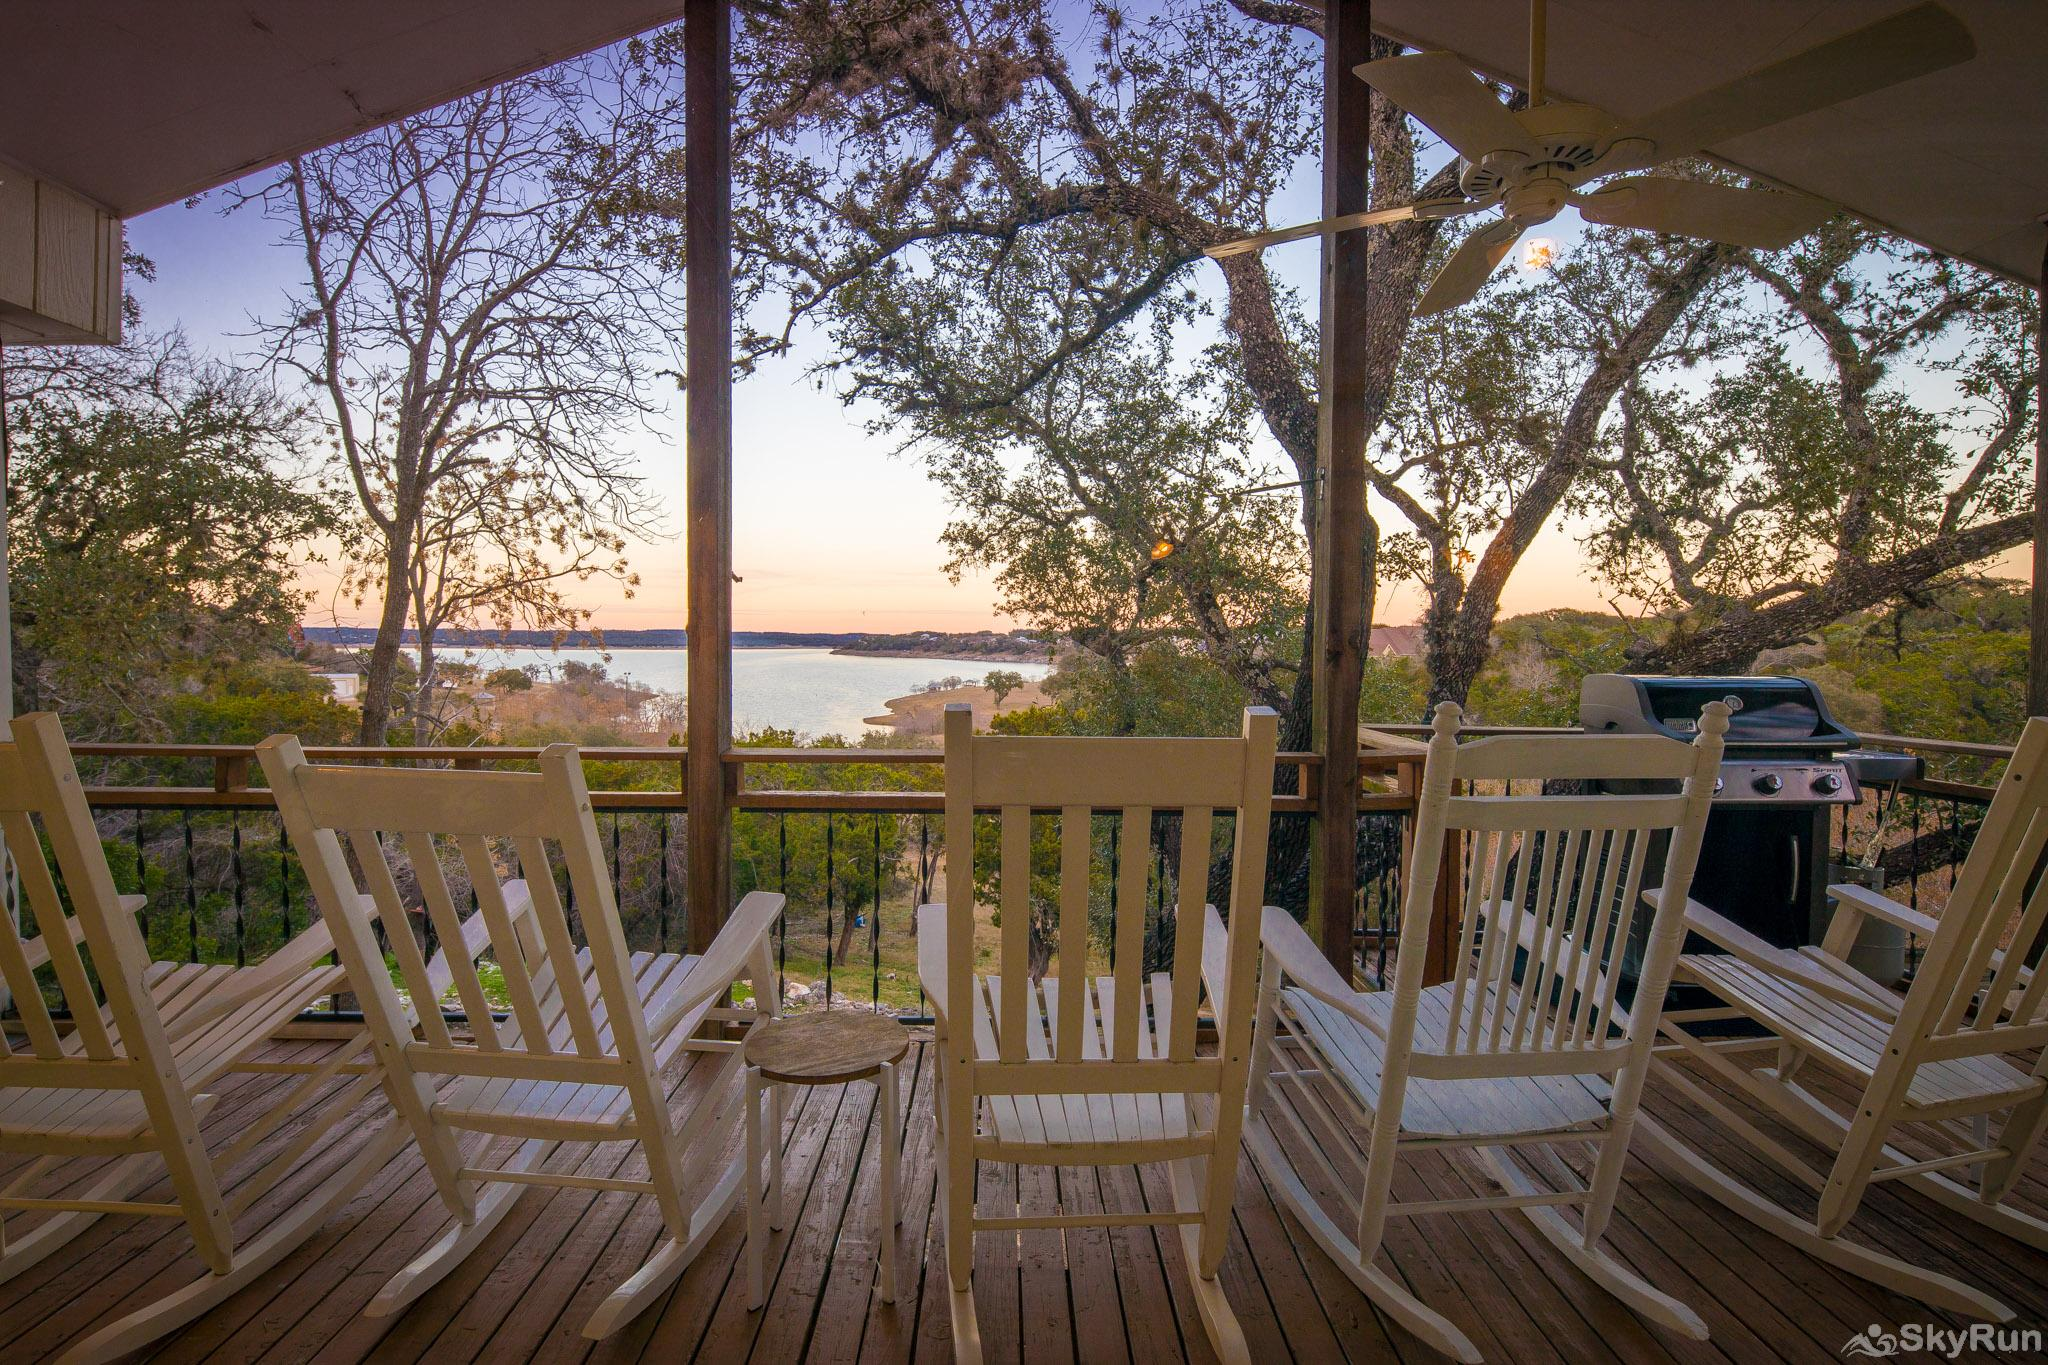 TEXAS ROSE LODGE Waterfront view of Canyon Lake from the raised deck